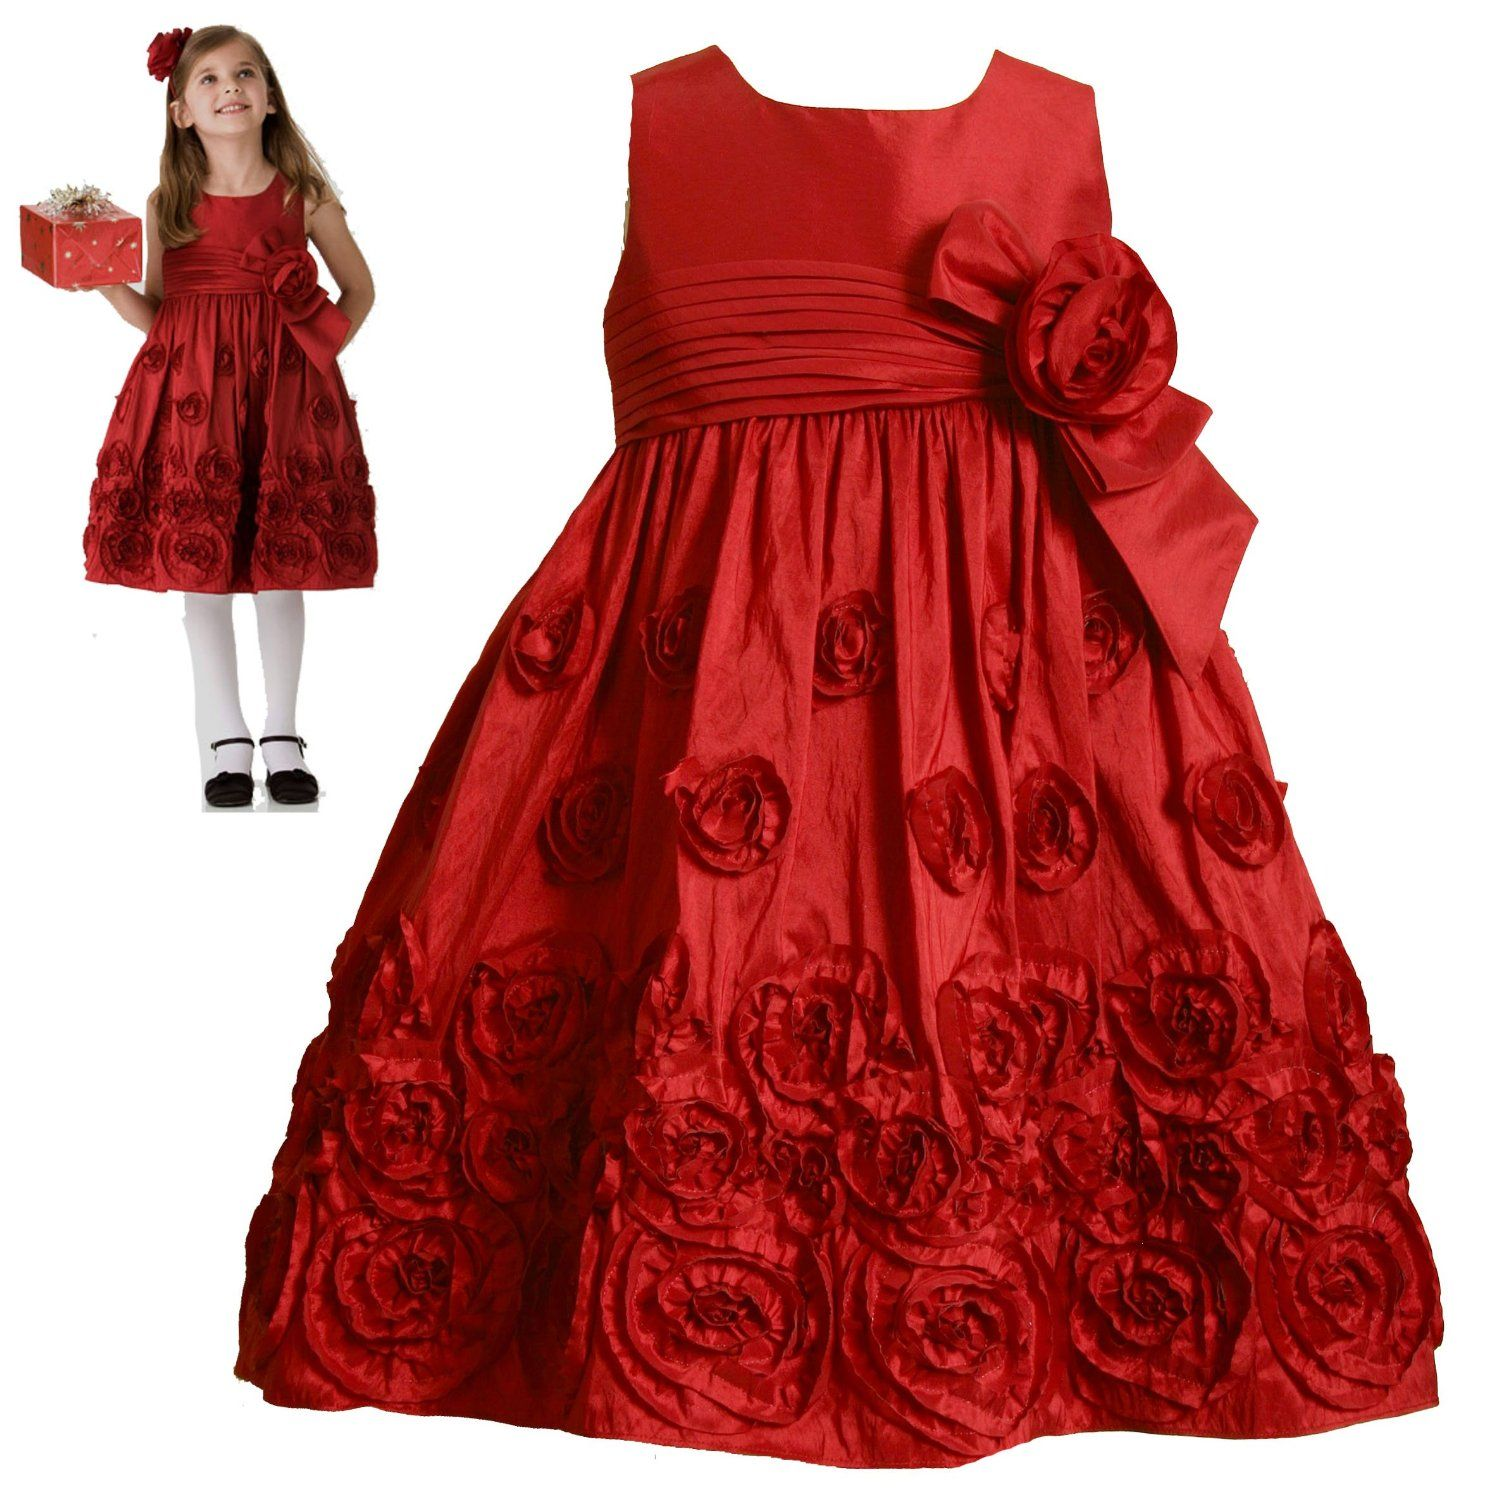 Christmas dresses for kids - Fabulous Ceremonial Dresses For Kids Christmas